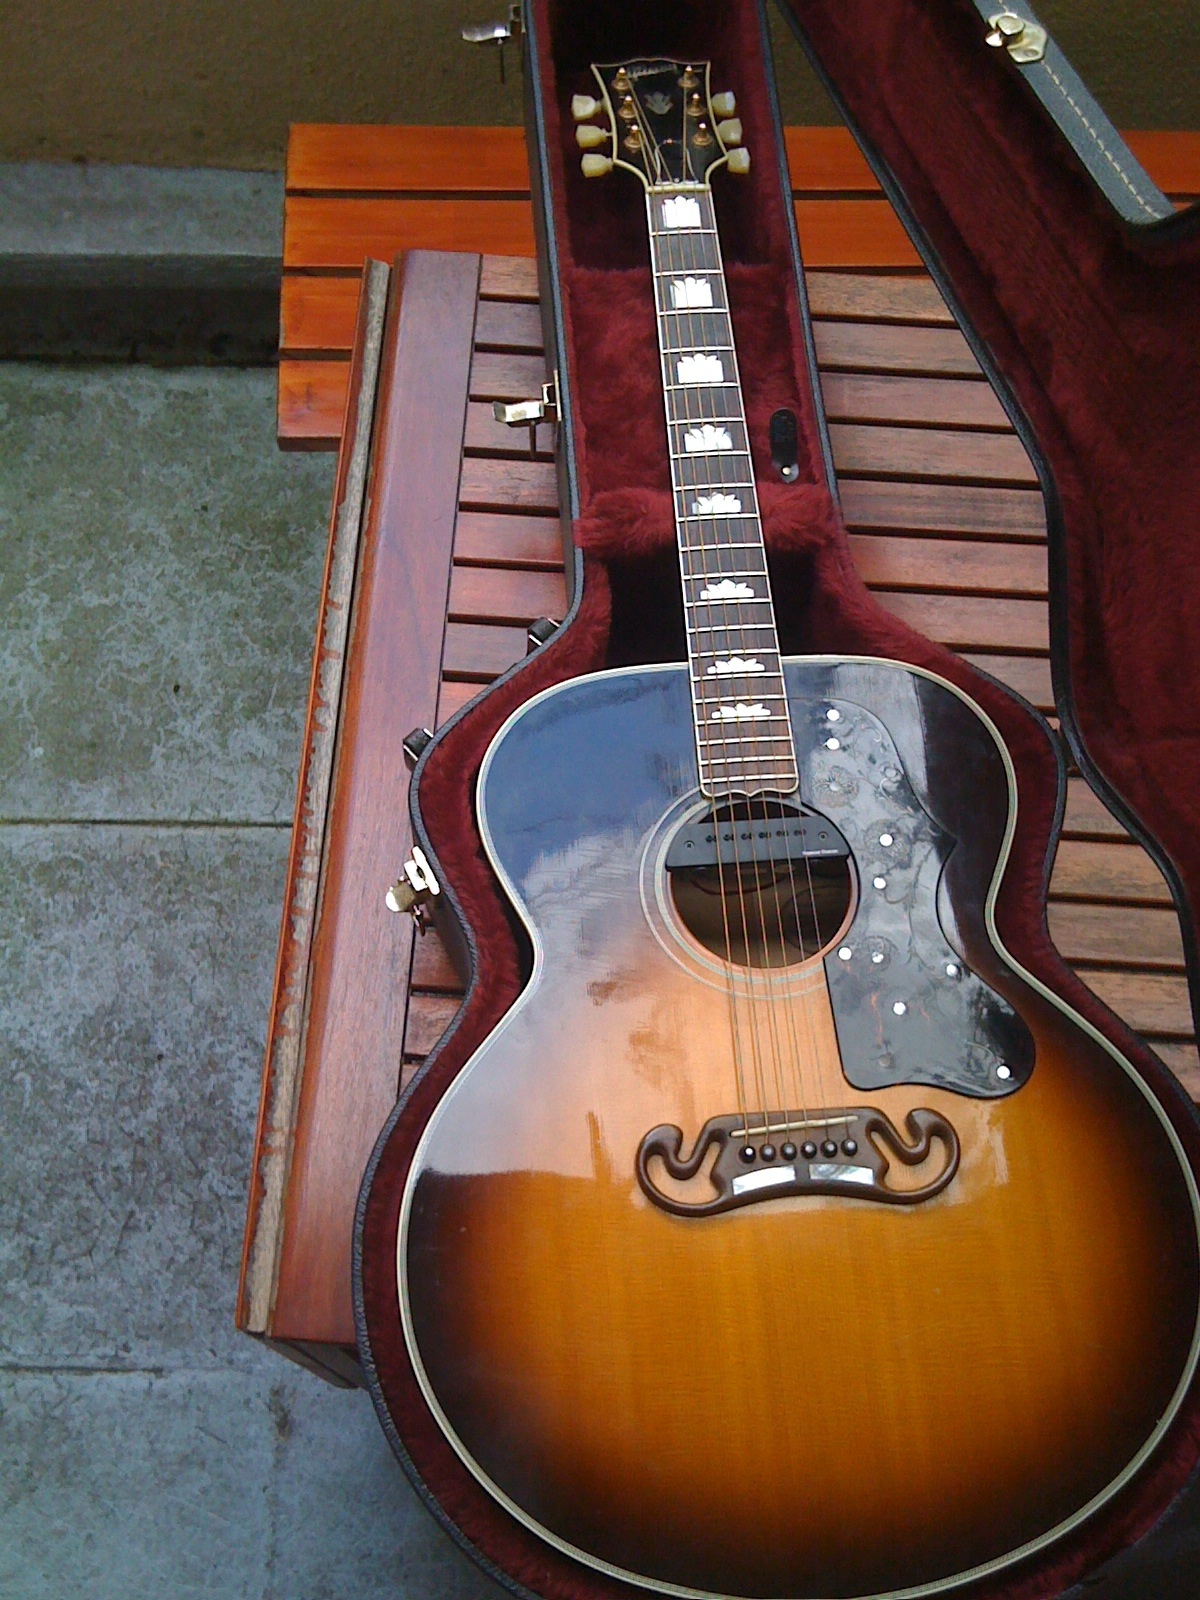 Pictures and images Gibson J-200 Standard - Antique Natural - Audiofanzine